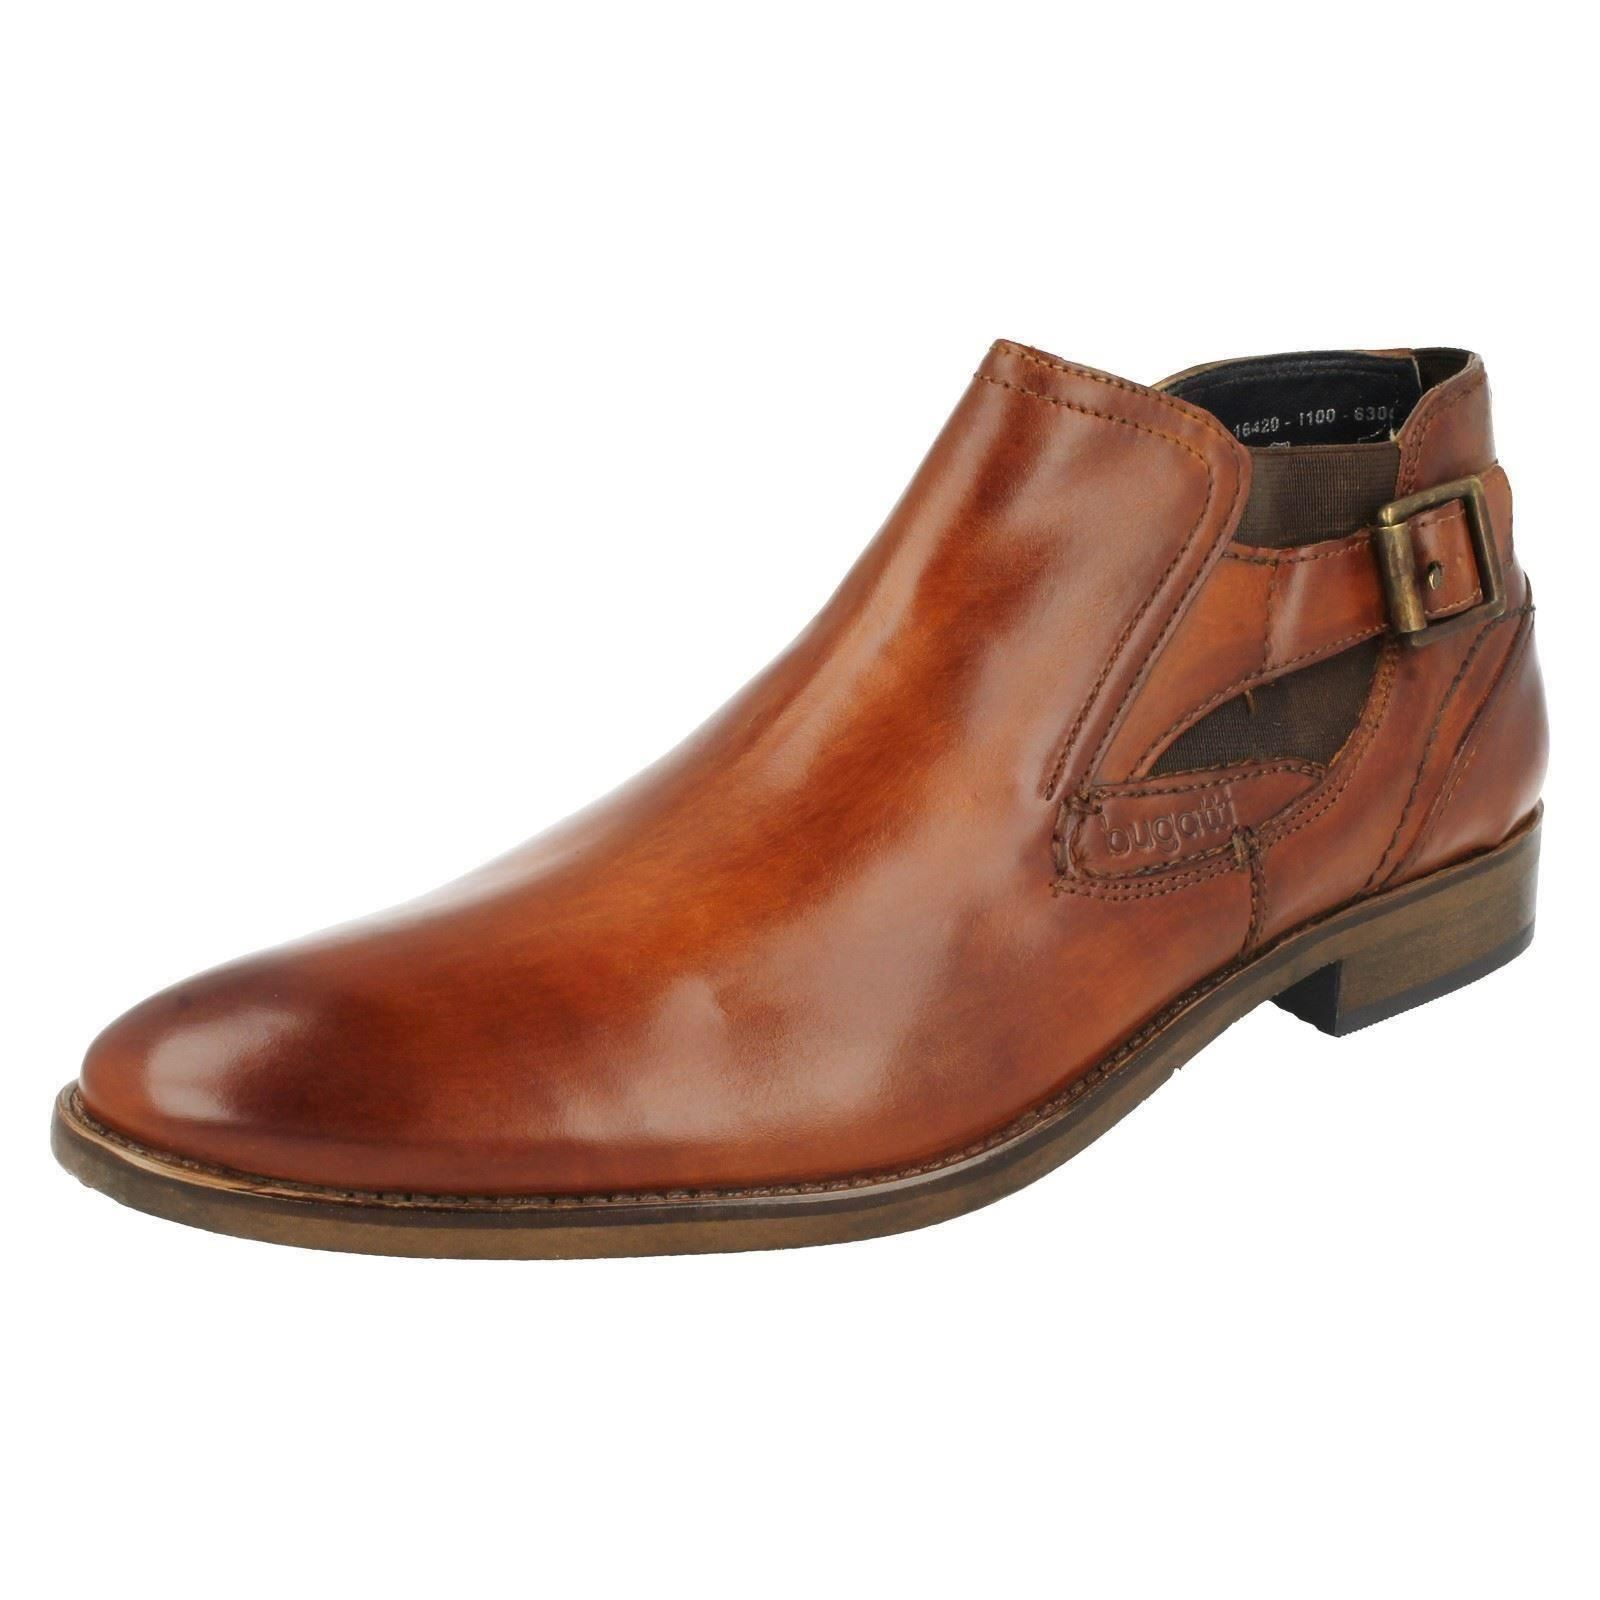 156806dd1b41d3 Mens Bugatti Smart Ankle BOOTS 16420 UK 10 Cognac Standard. About this  product. Picture 1 of 10  Picture 2 of 10 ...